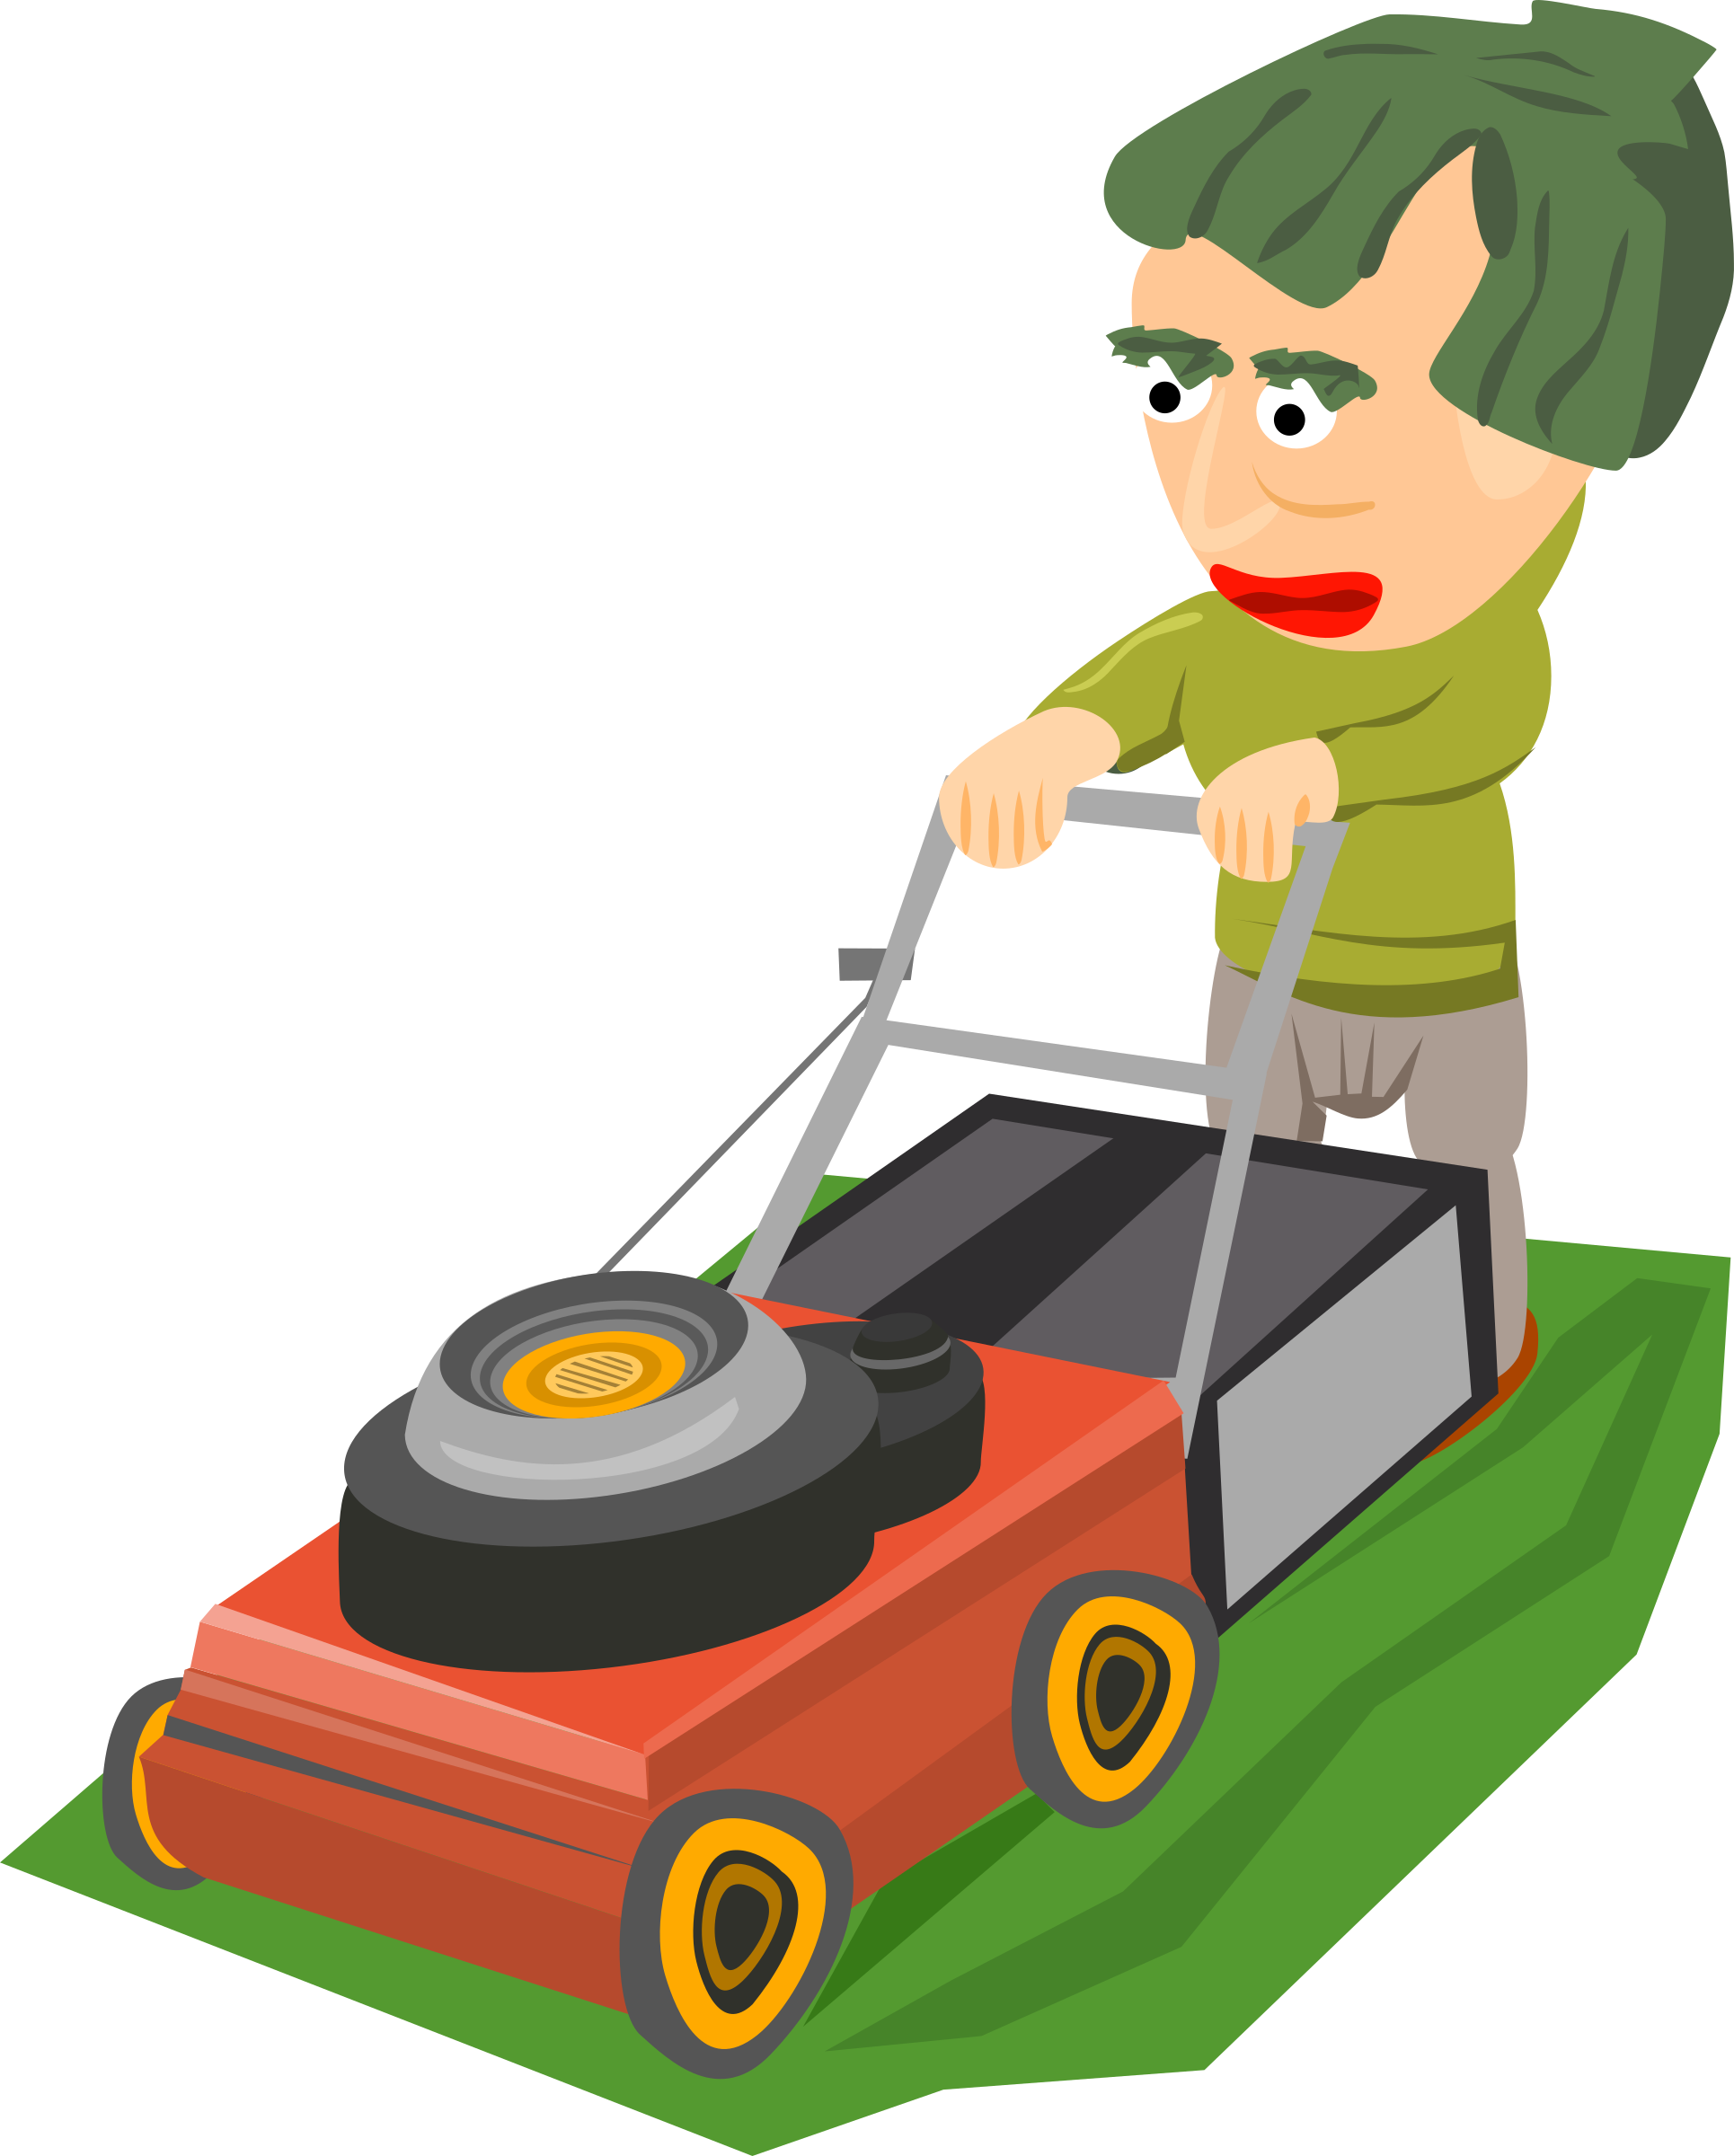 Mowing clipart file. The lawn icons png